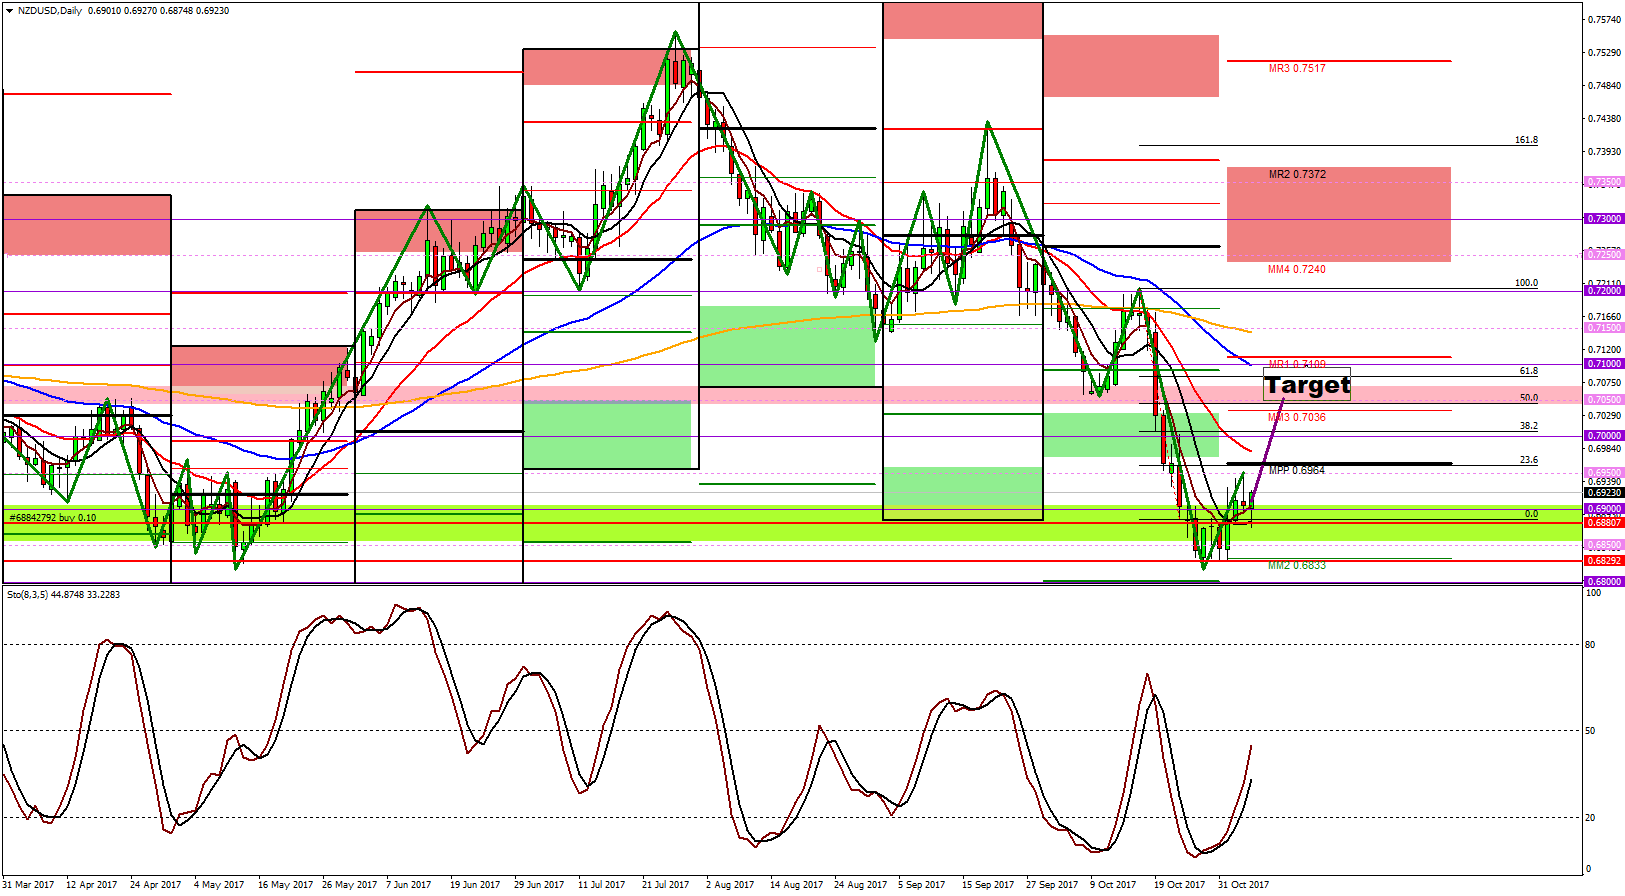 Long position in forex